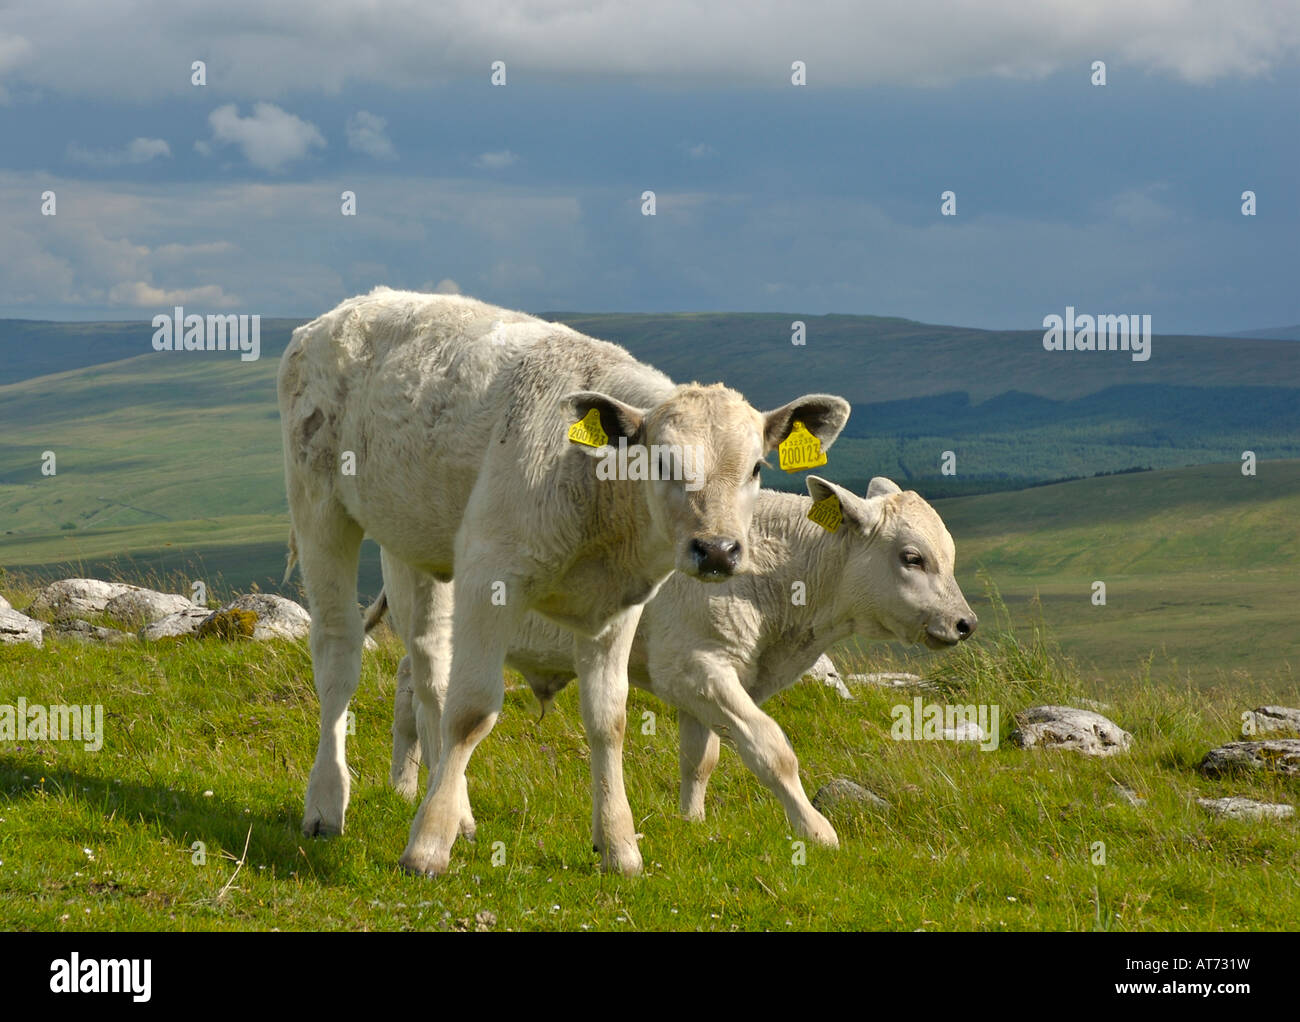 Calves on Cam Fell, above Wensleydale, on the Pennine Way, Yorkshire Dales National Park, UK - Stock Image